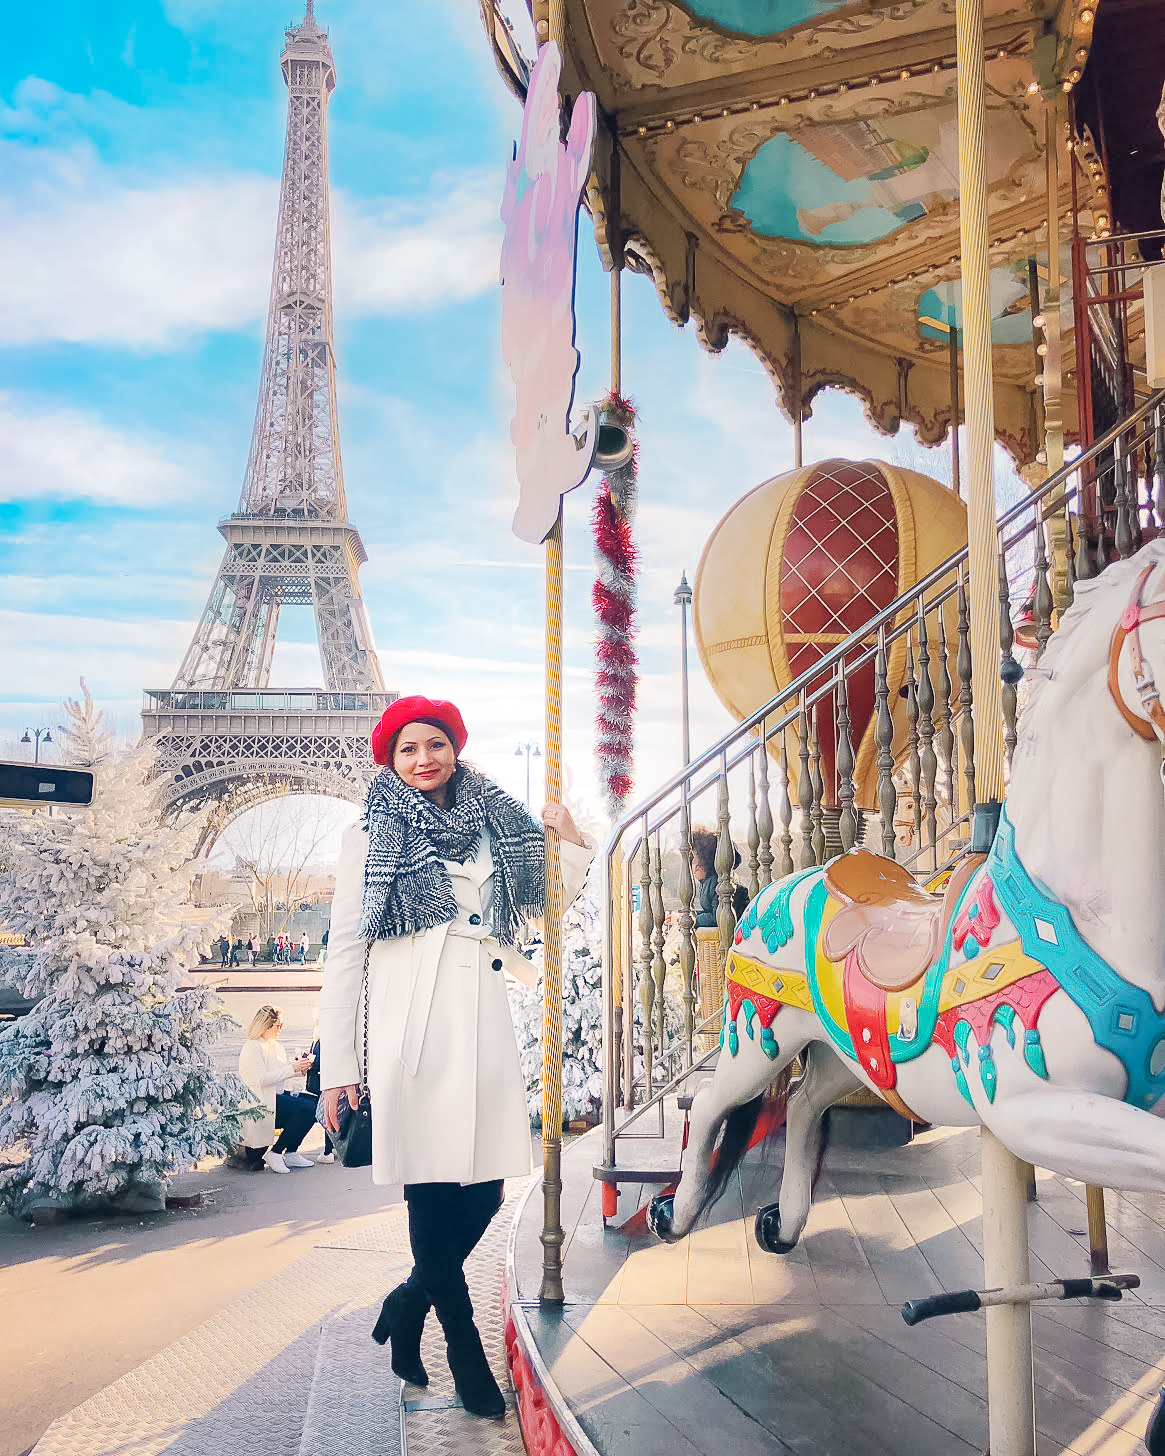 Muslim-travel-guide-Paris-Eiffel-Tower-carousel.jpg